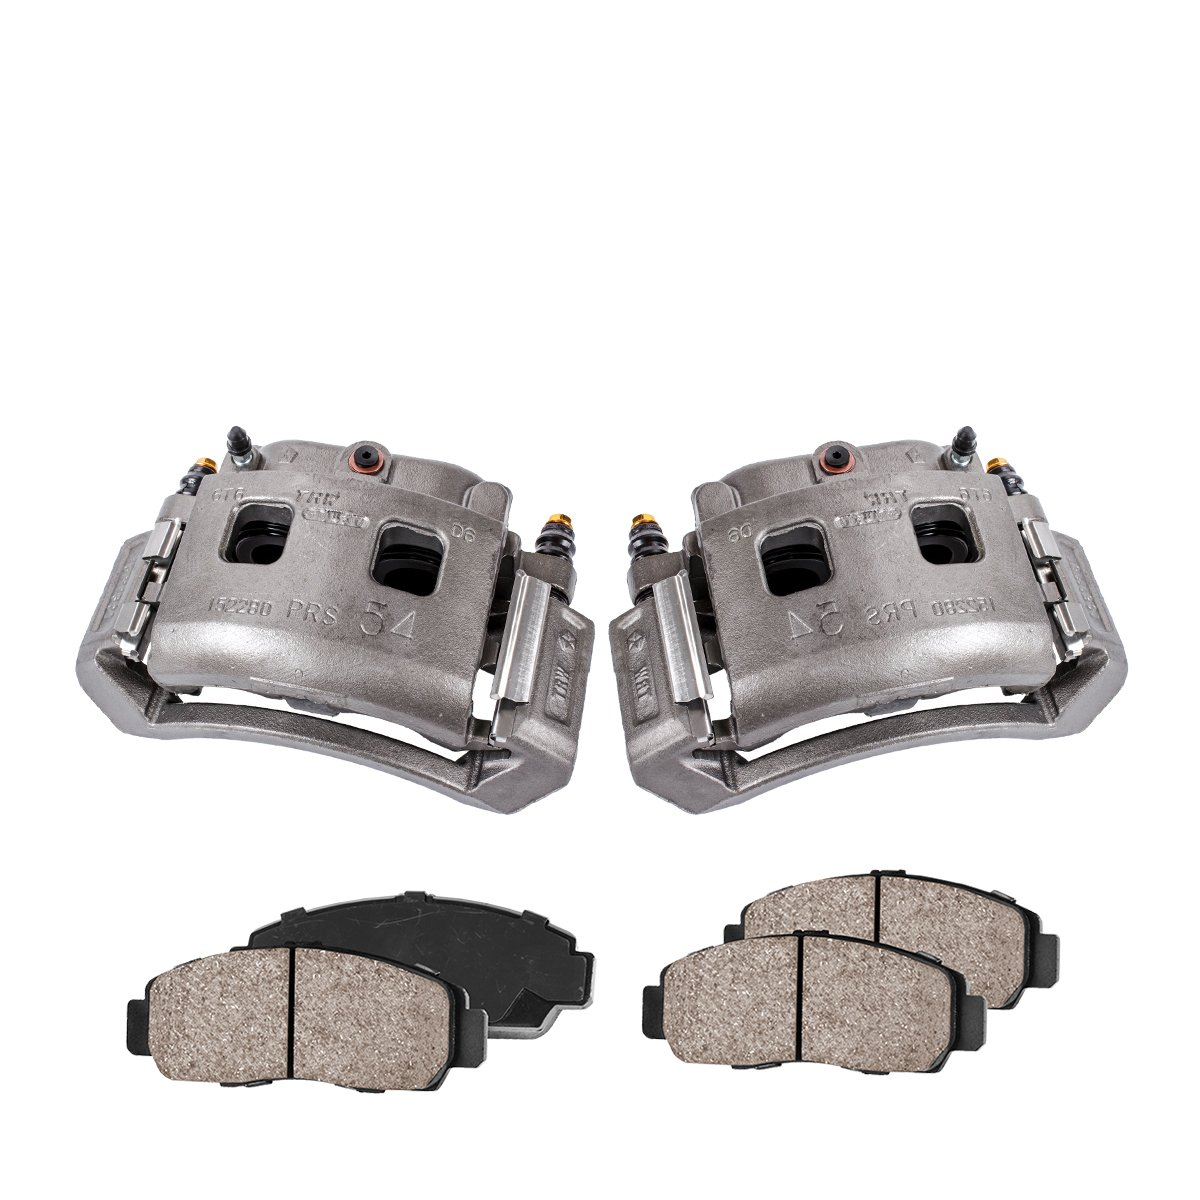 Quiet Low Dust Ceramic Brake Pads COEK00275 FRONT Premium Loaded OE Caliper Assembly Set 2